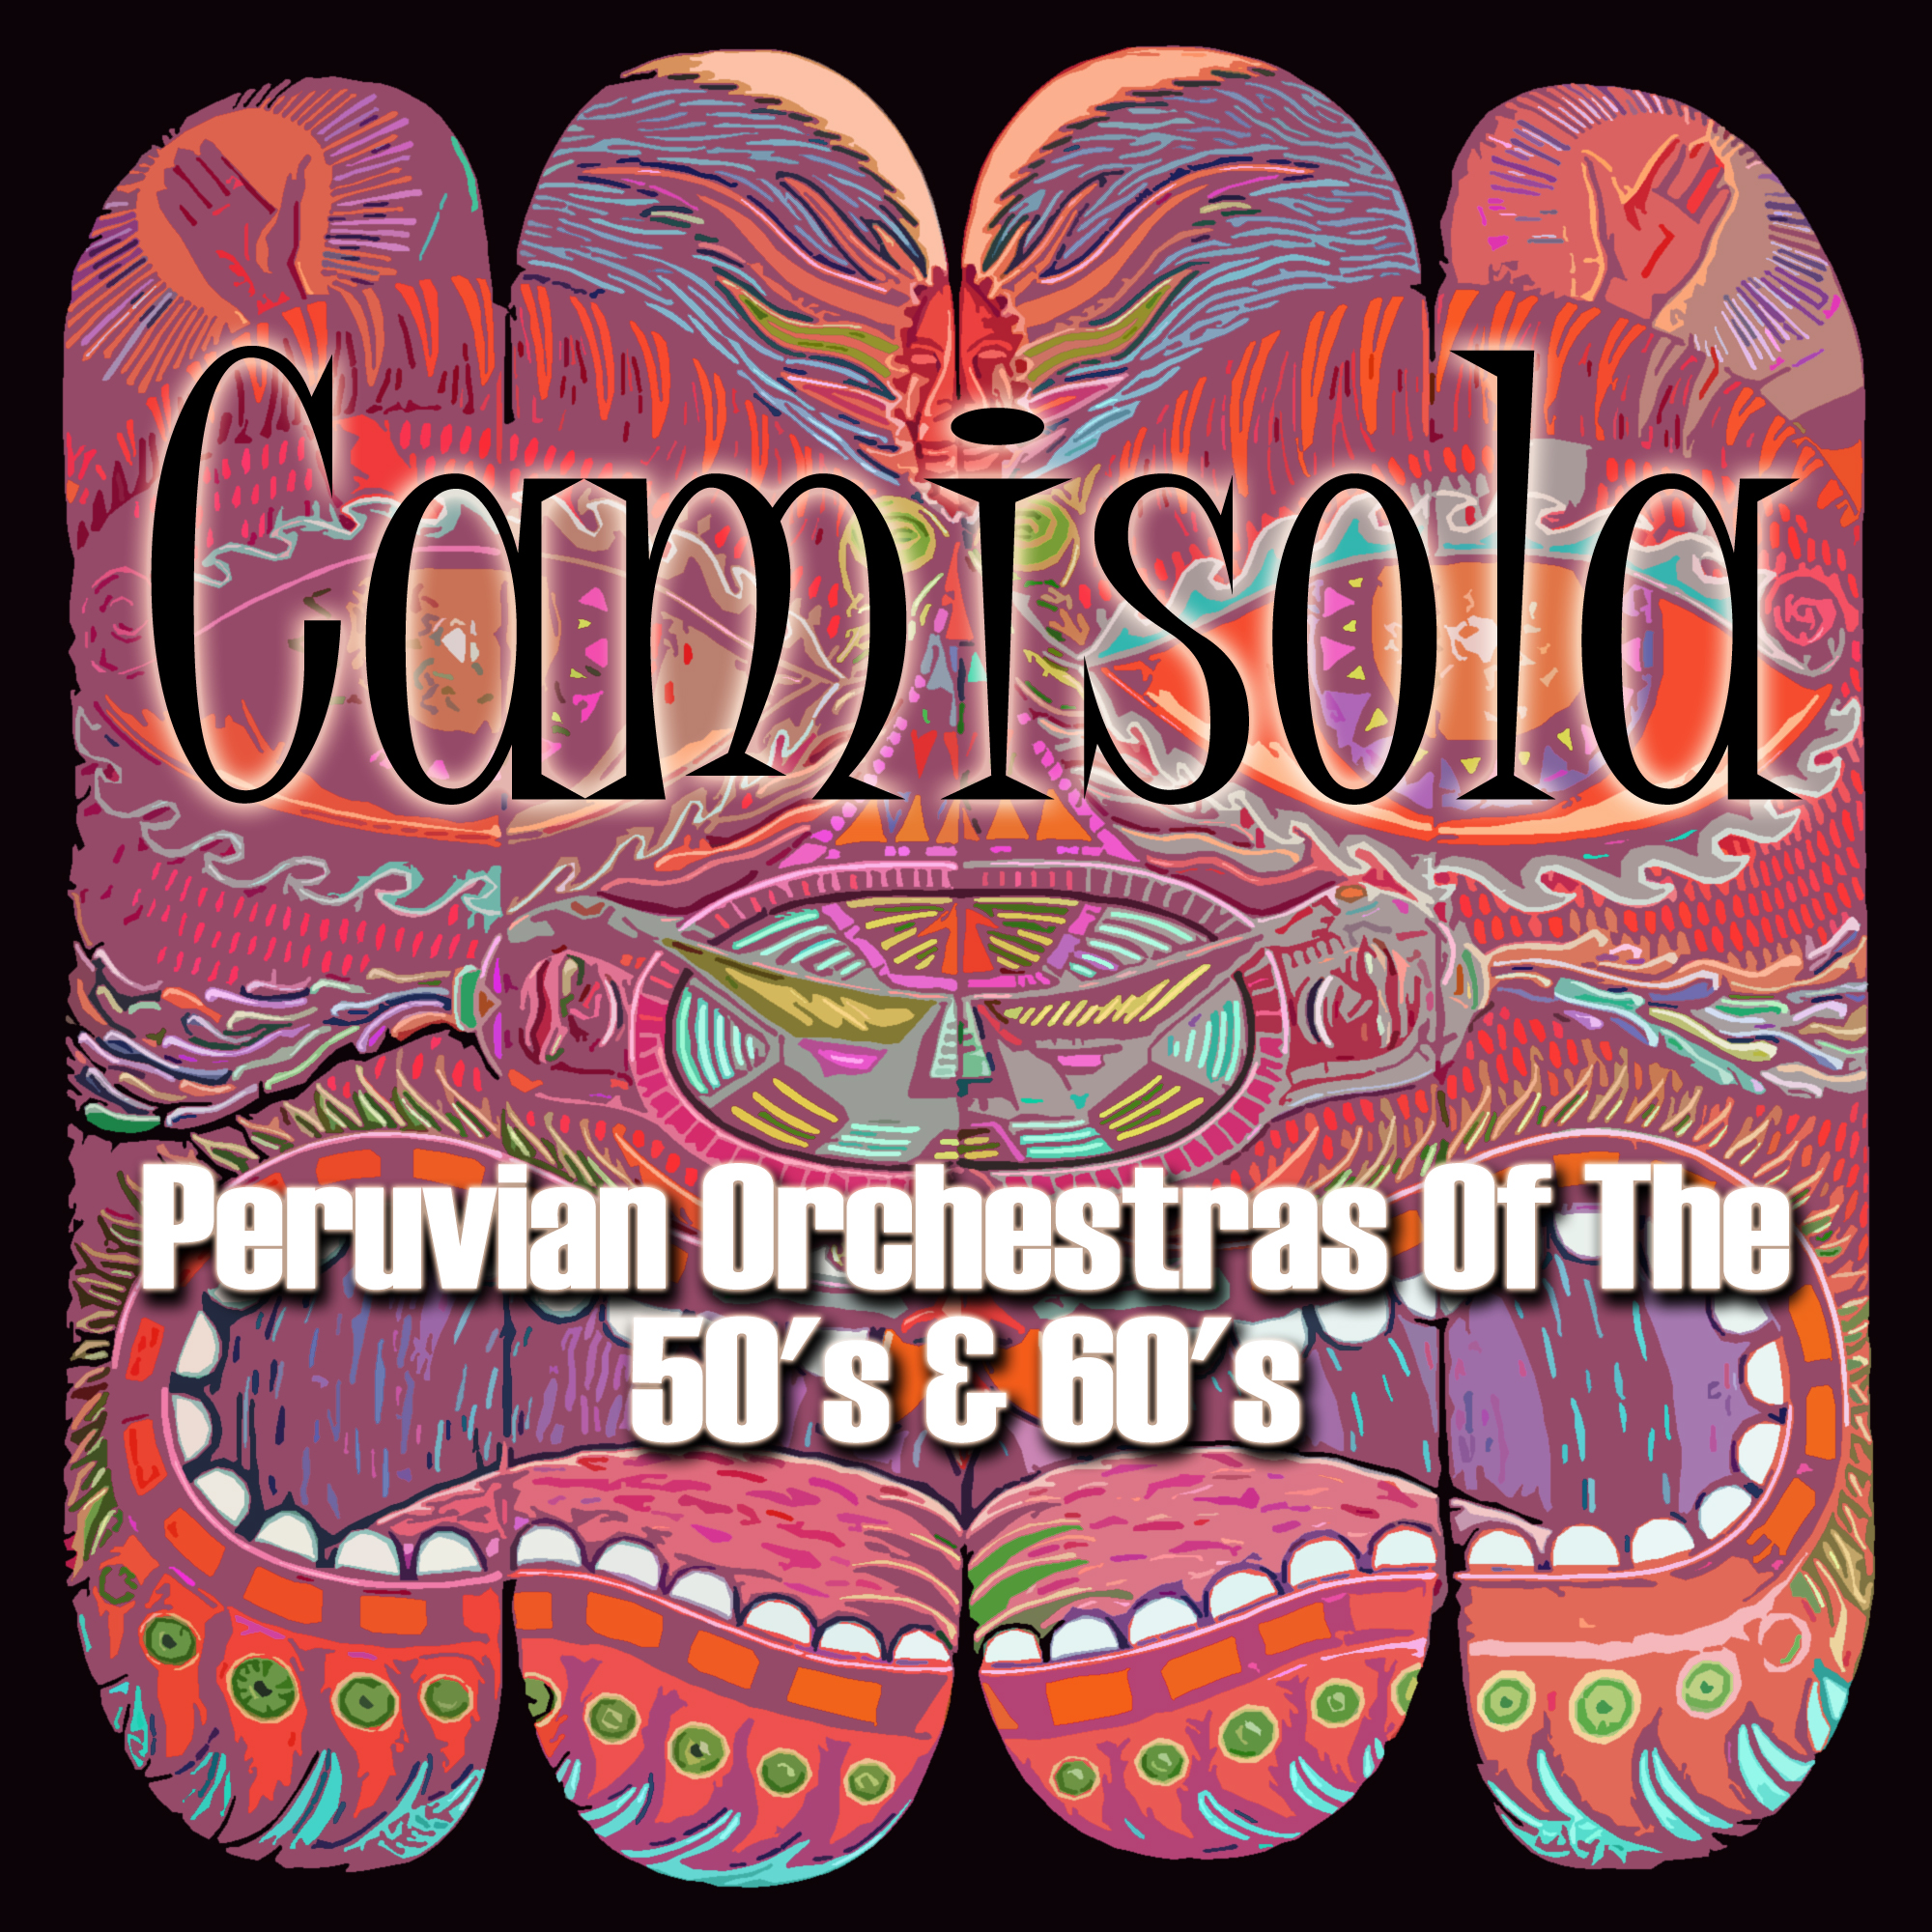 Camisola - Peruvian Orchestras Of The 50s & 60s